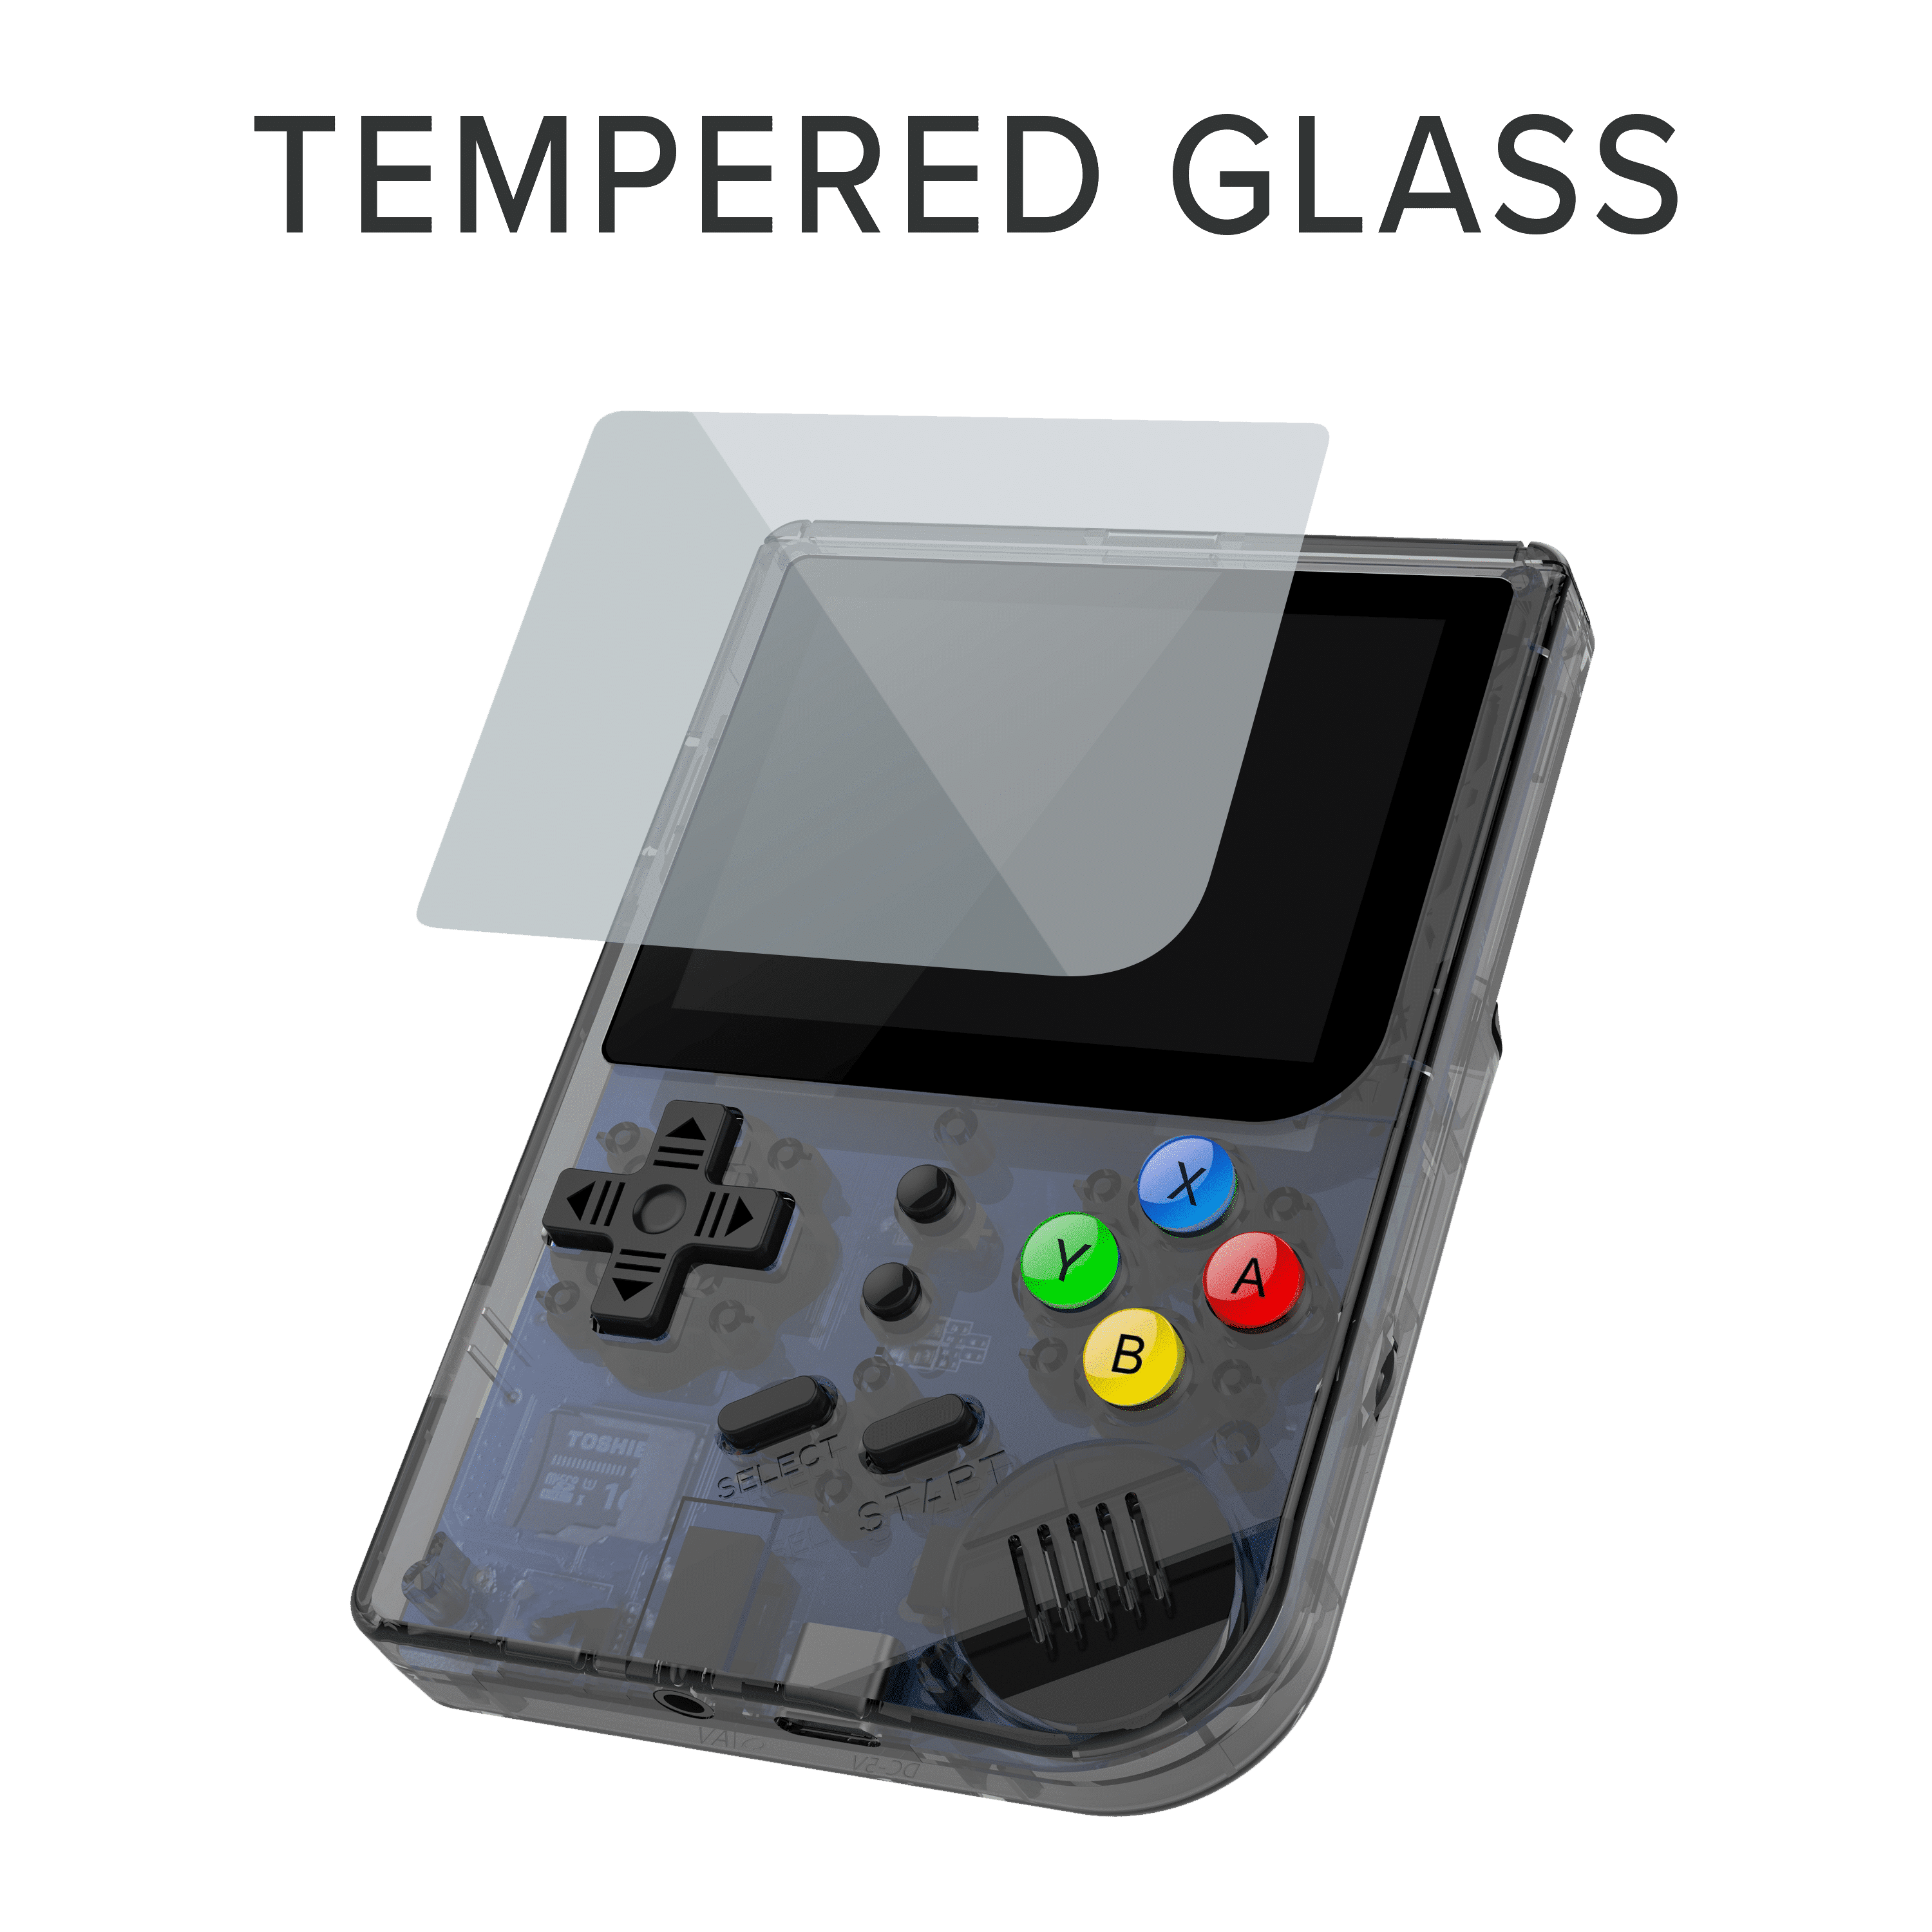 RG300 OpenDingux Retro Gaming Portable Handheld - Transparent Showcasing Tempered Glass